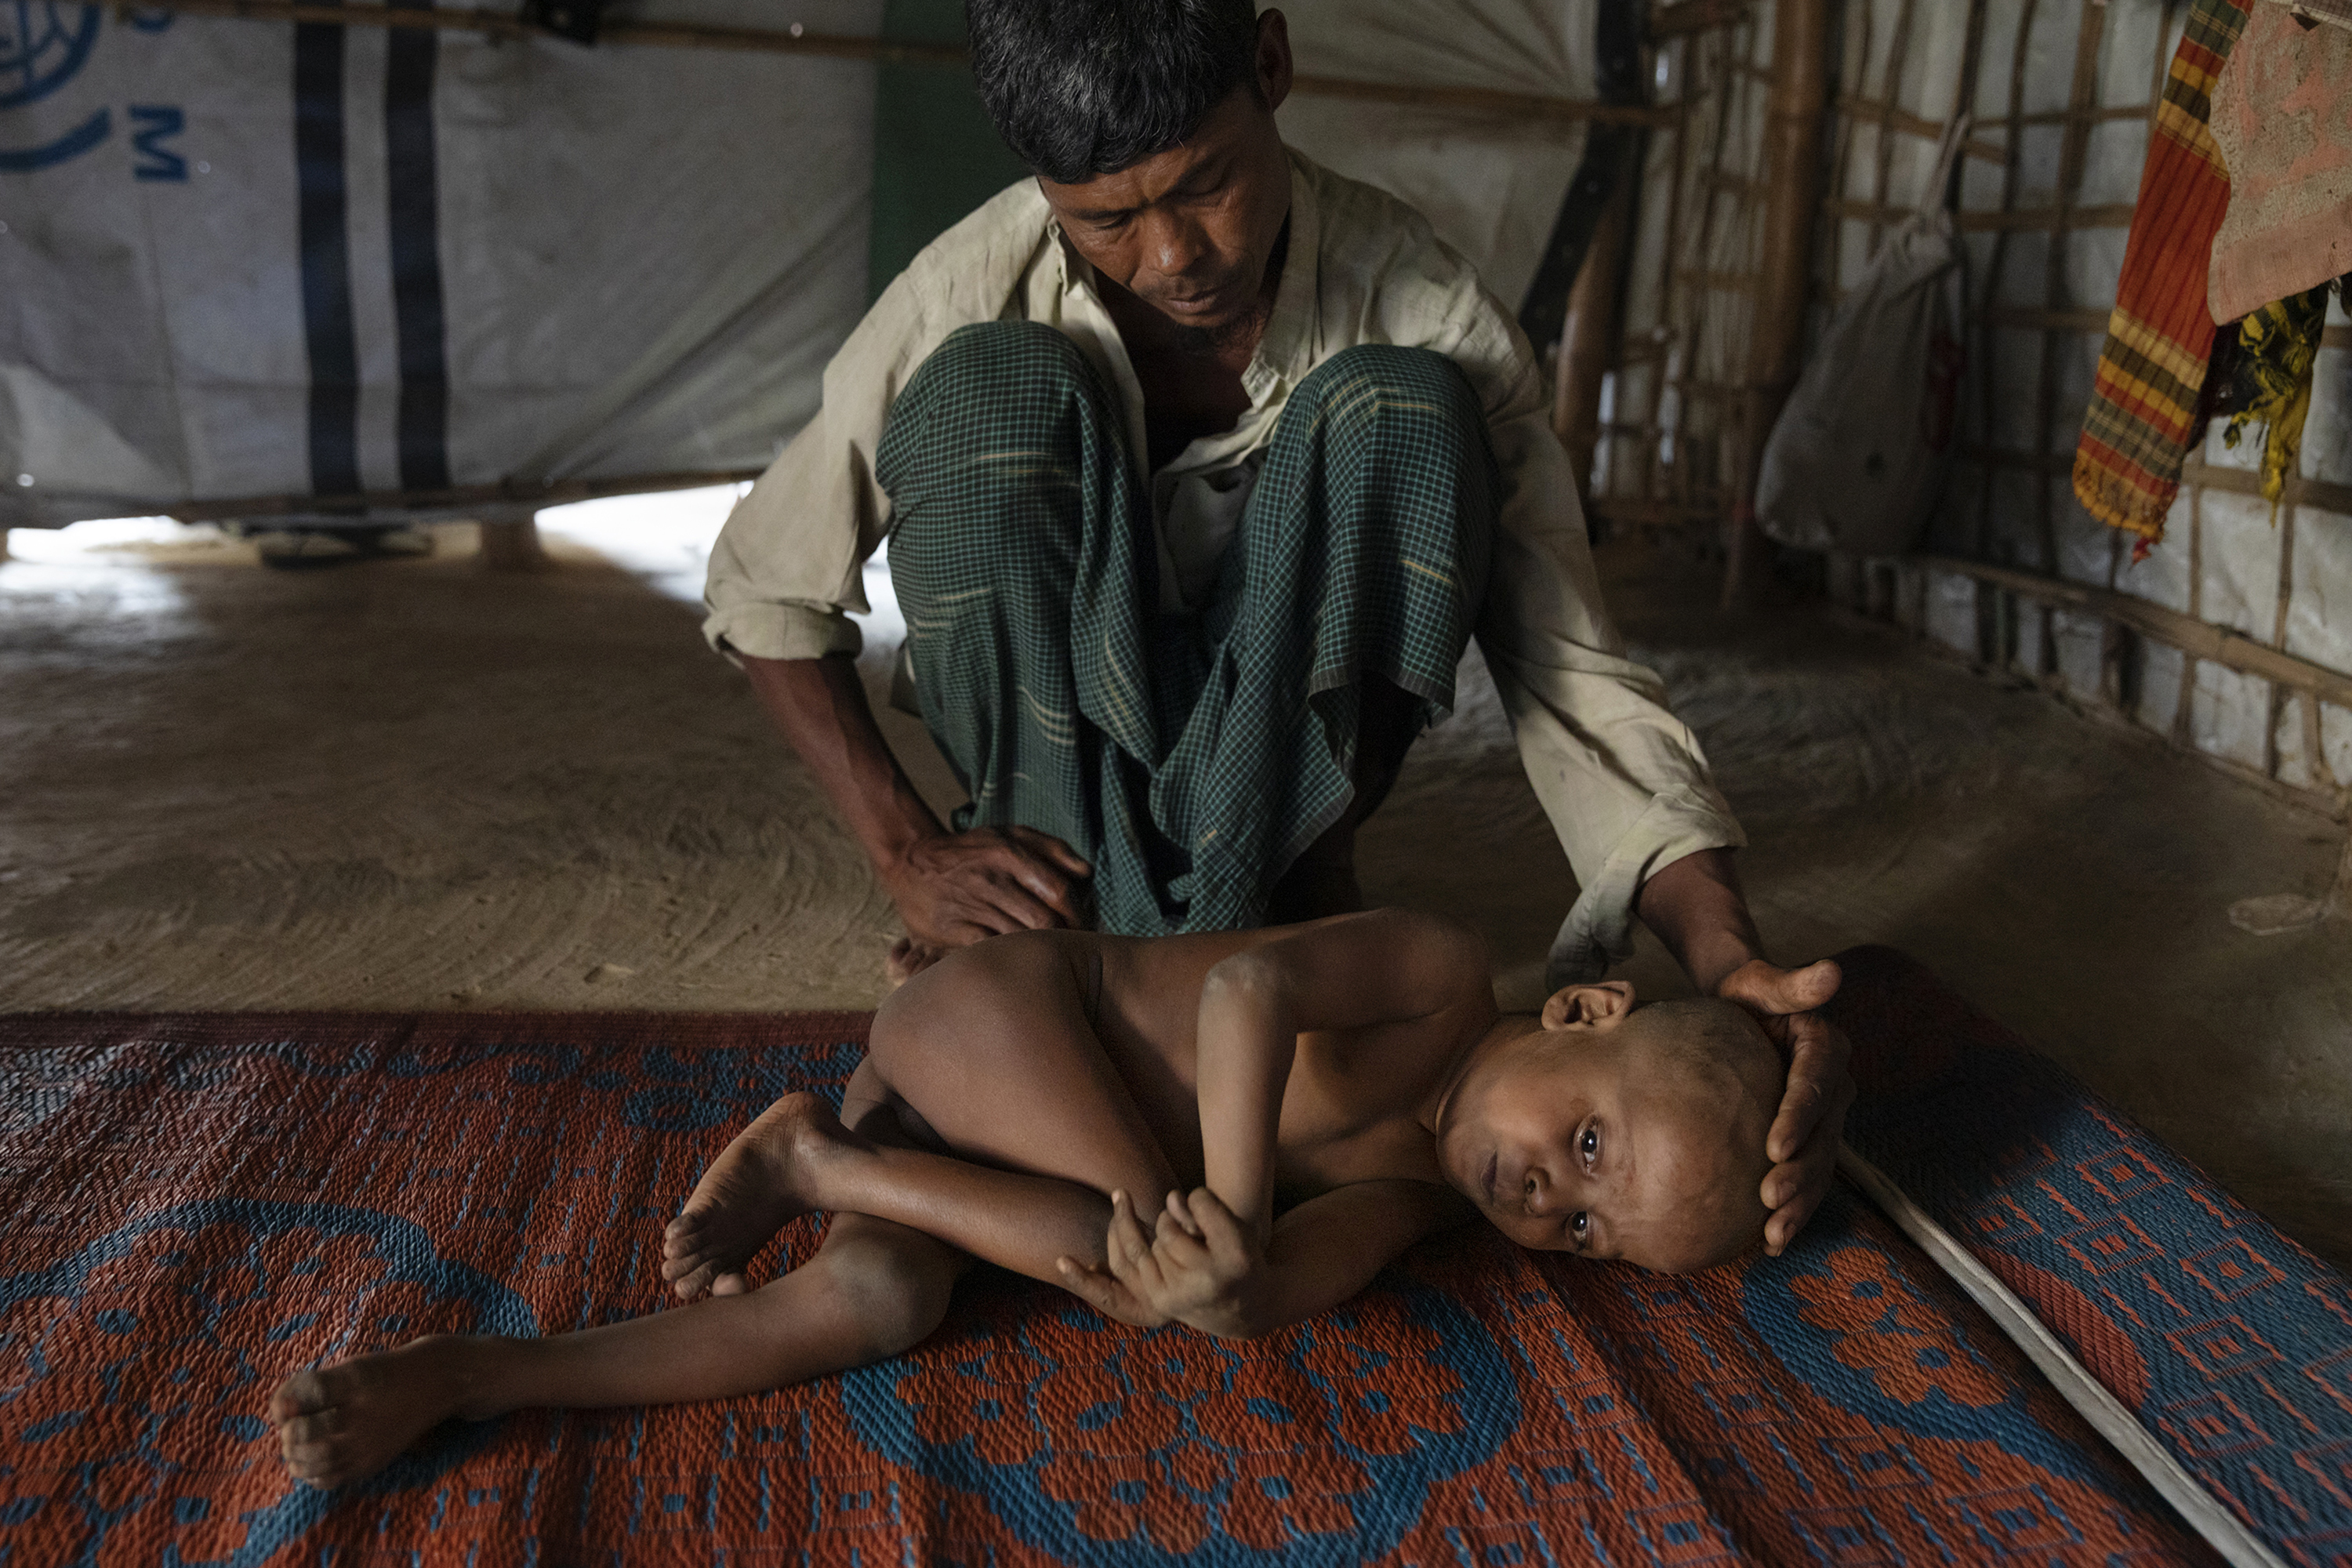 Mohammed Amin cares for his sick son, 7-year-old Mujibur Rahman, in a hut. The boy suffers from a nervous system disorder, his father said.